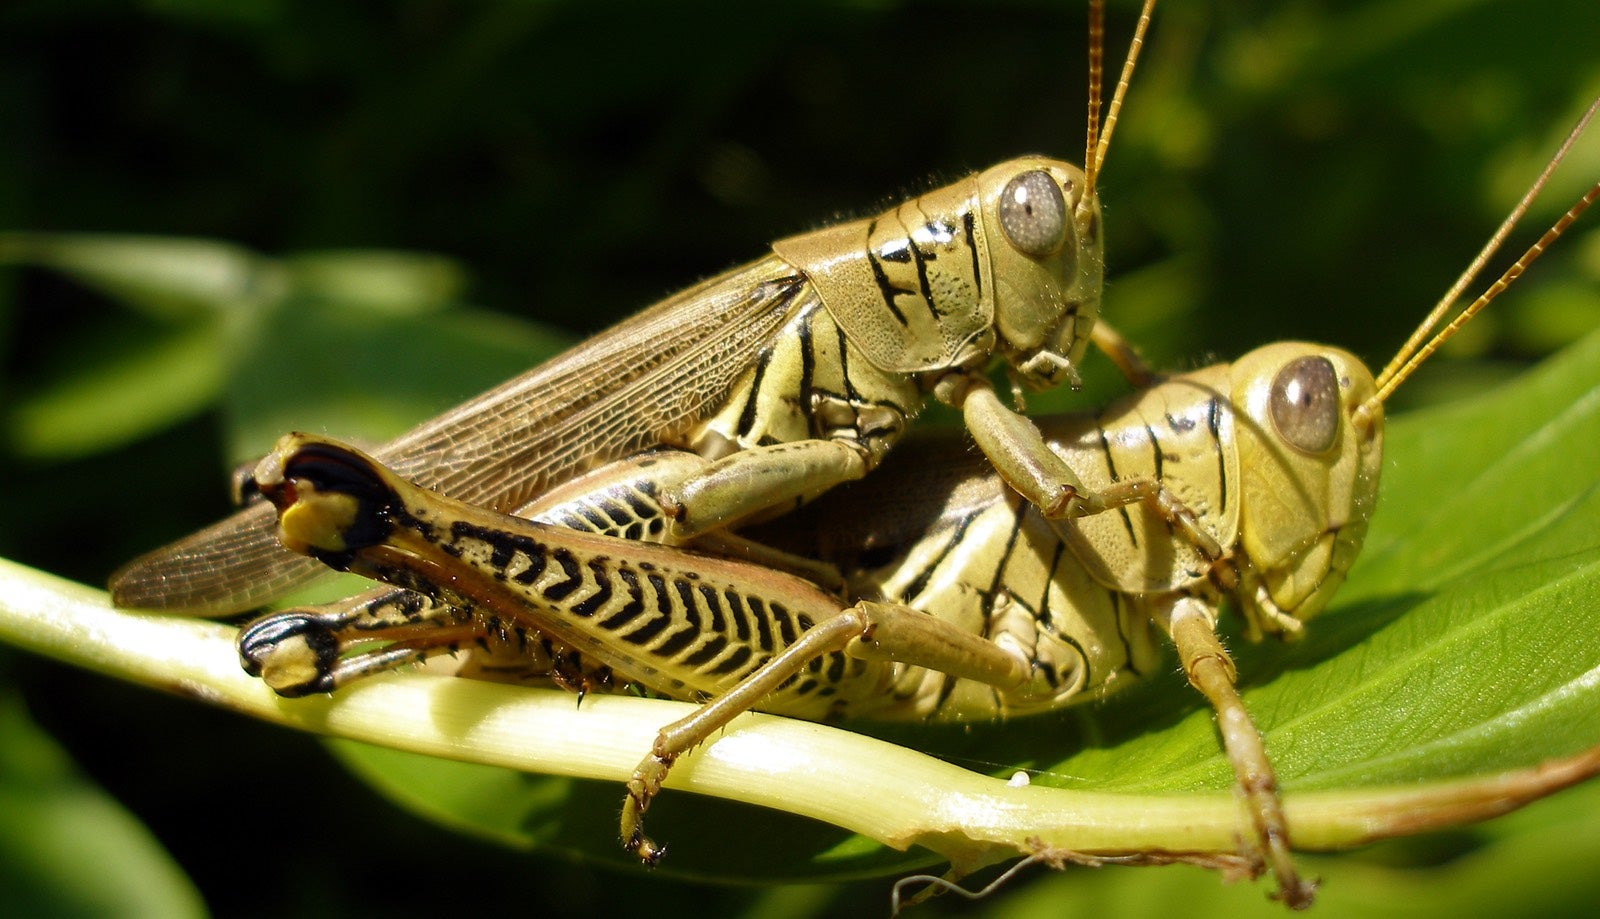 Scientists Froze Some Grasshoppers Mid-Bang To Study Their Genitals